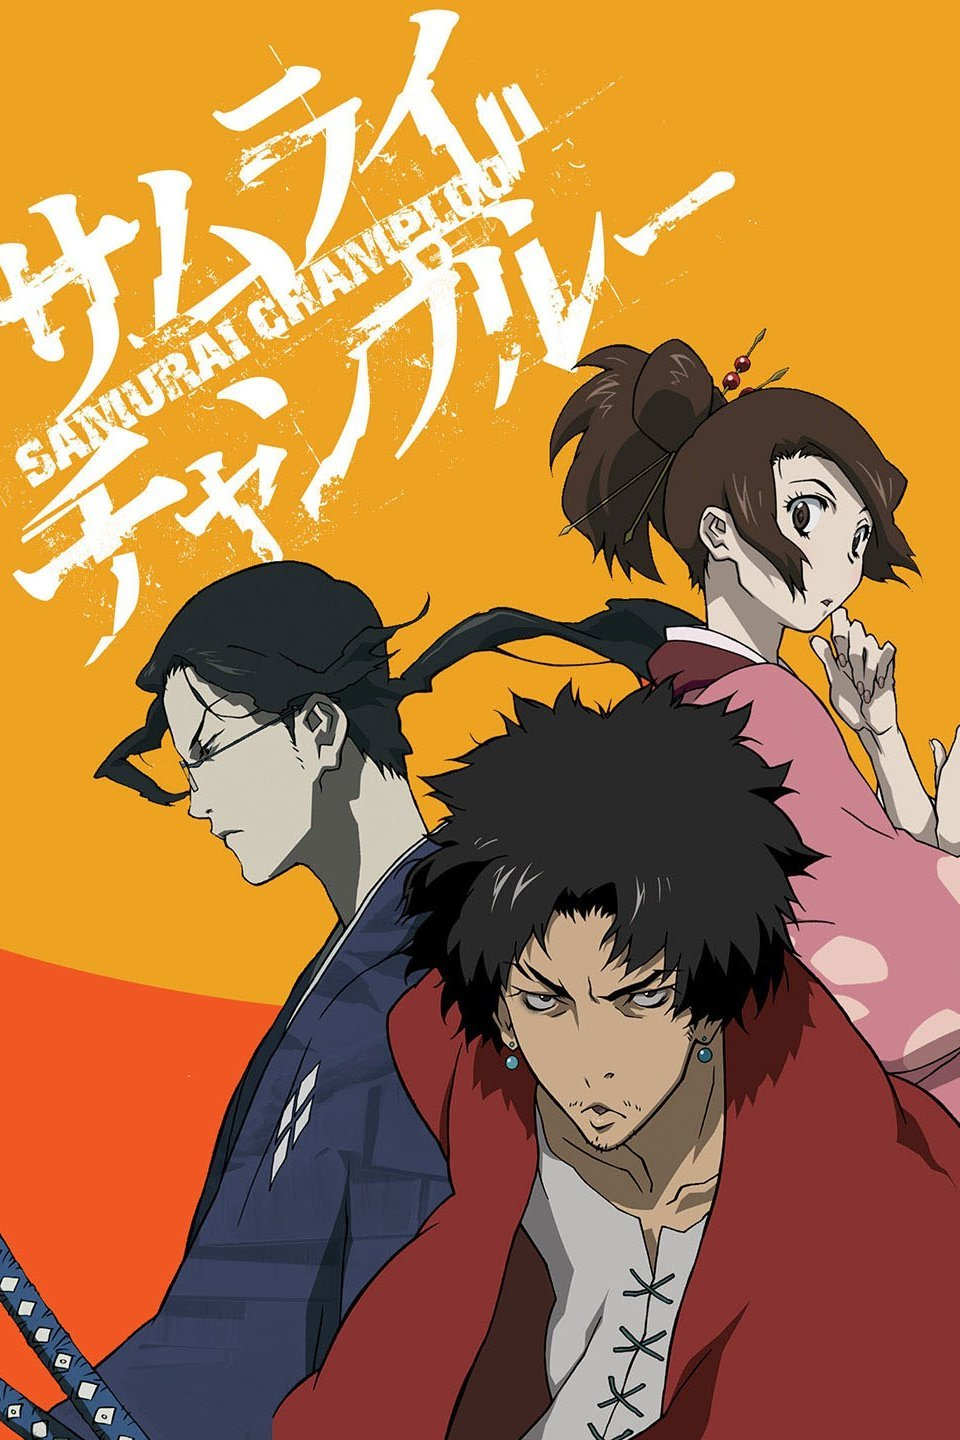 Samurai Champloo (TV Series 2004–2005) - IMDb